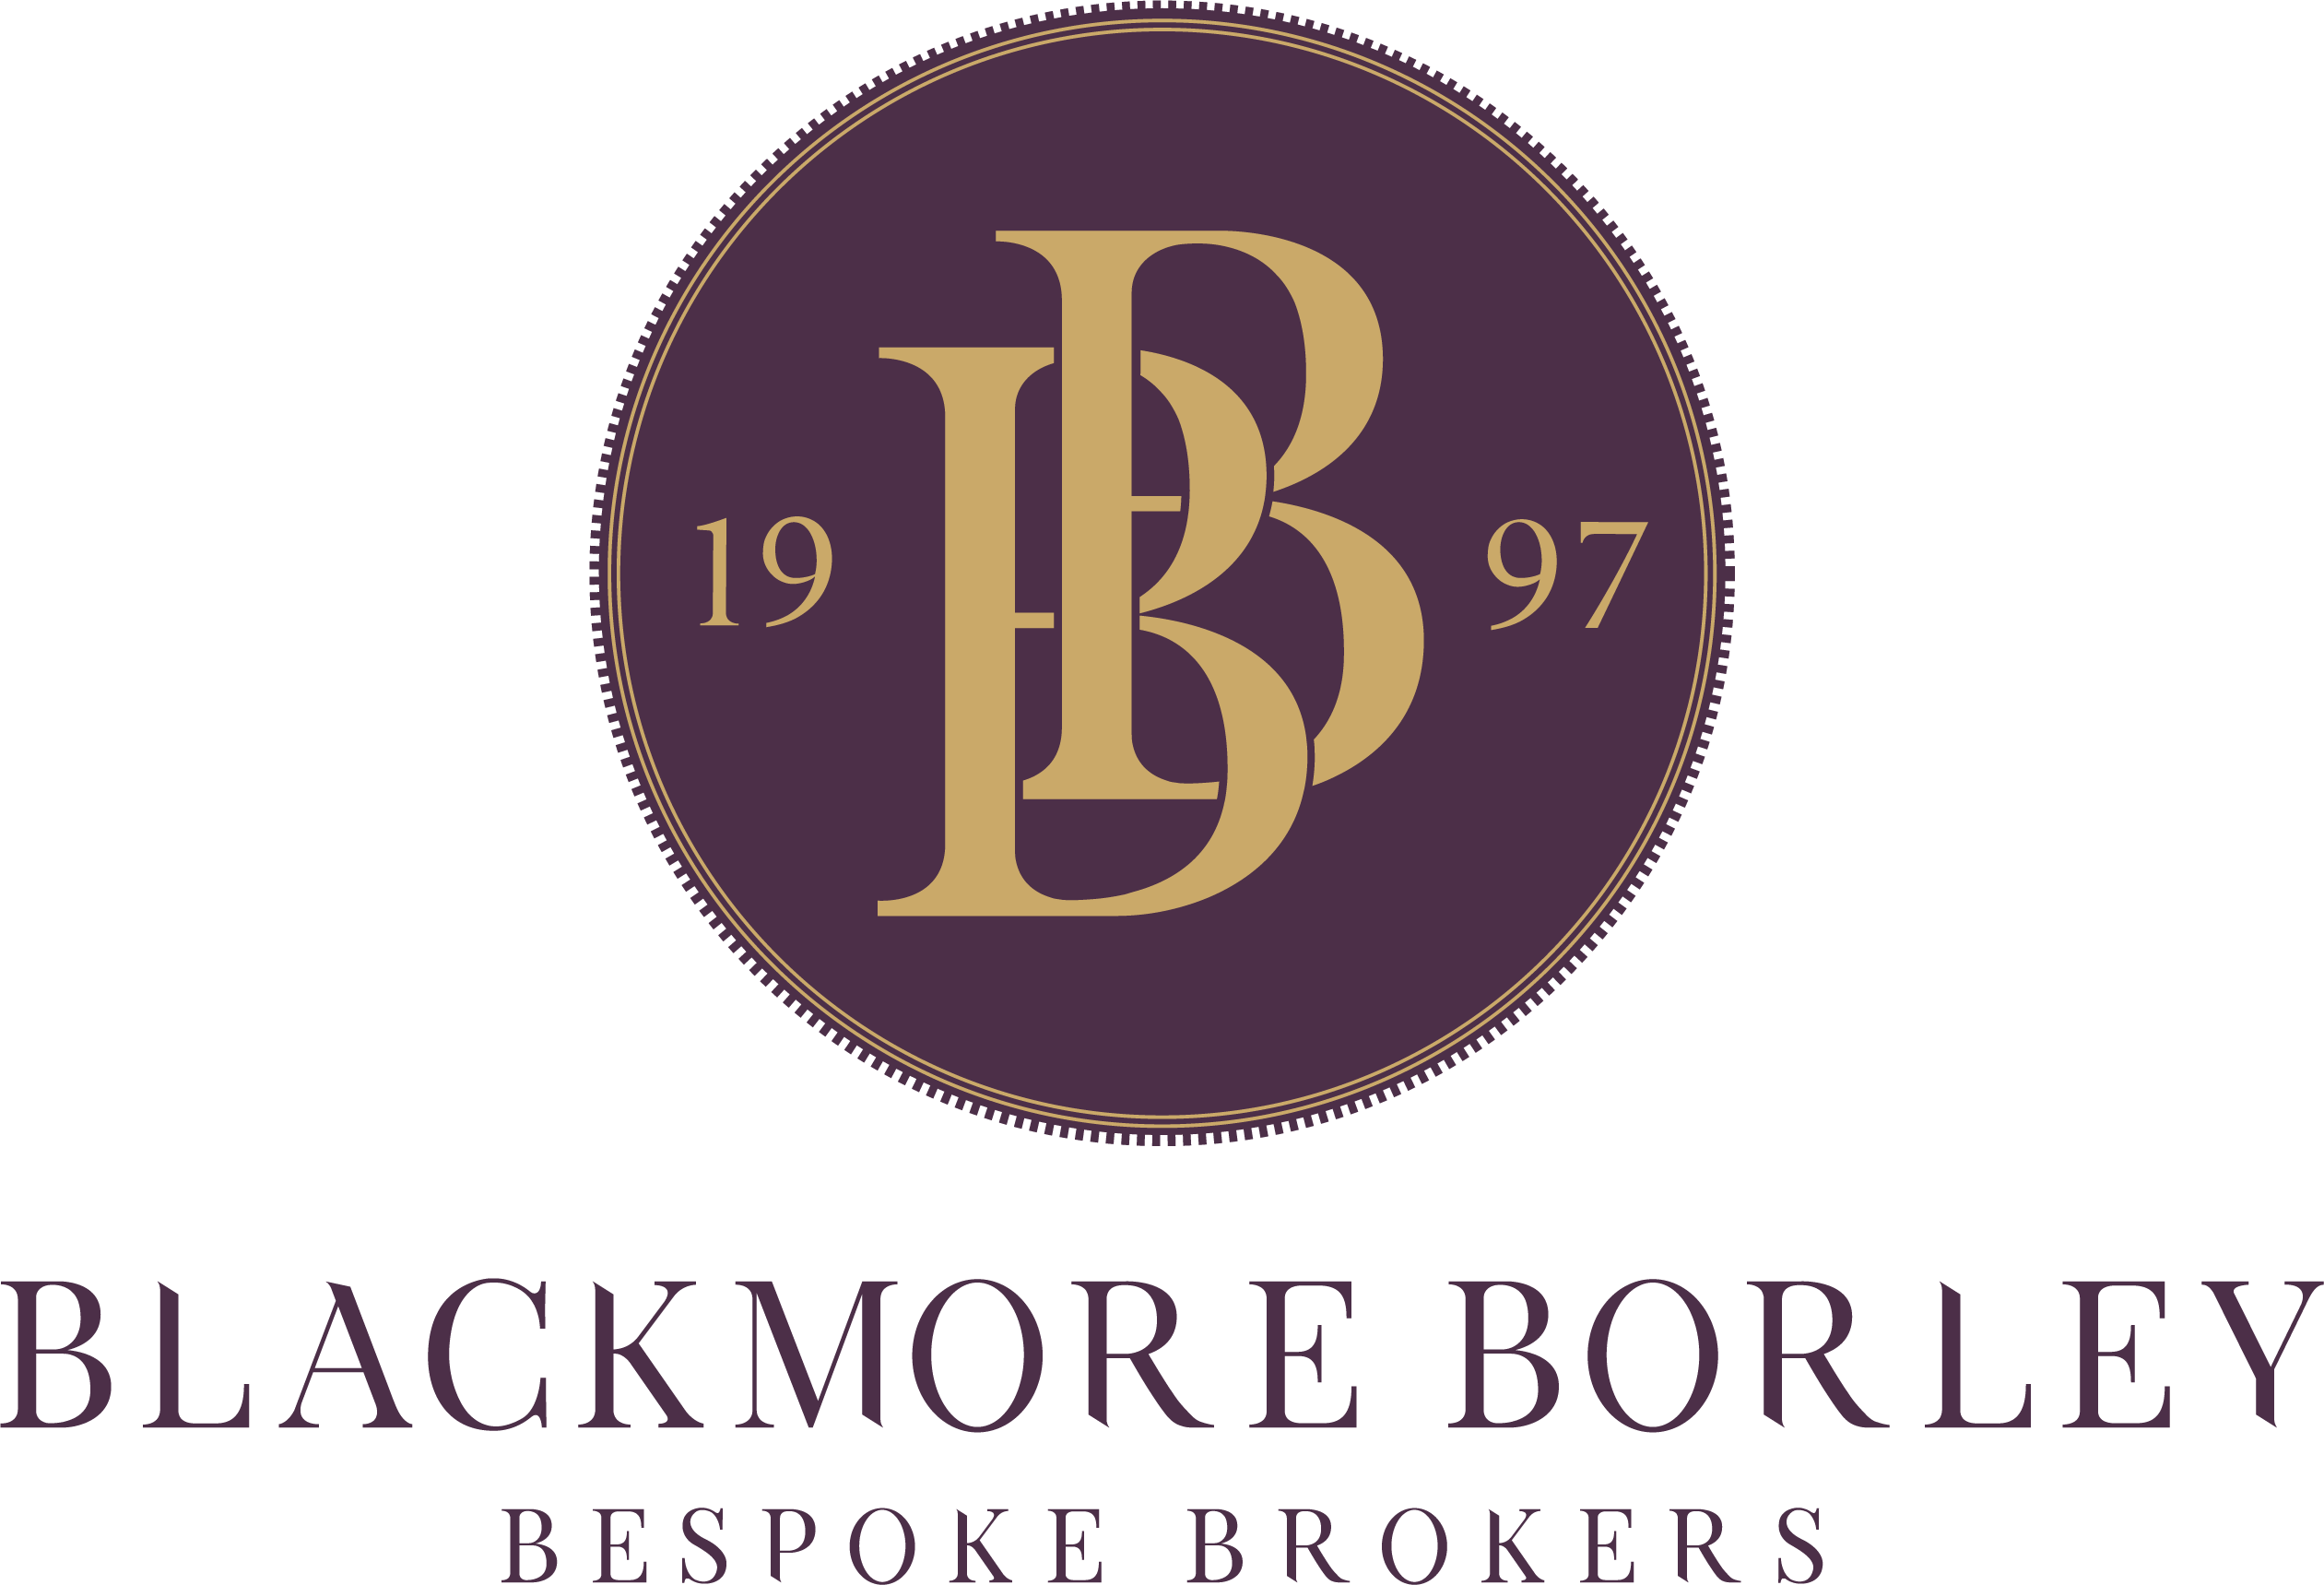 Blackmore Borley Ltd